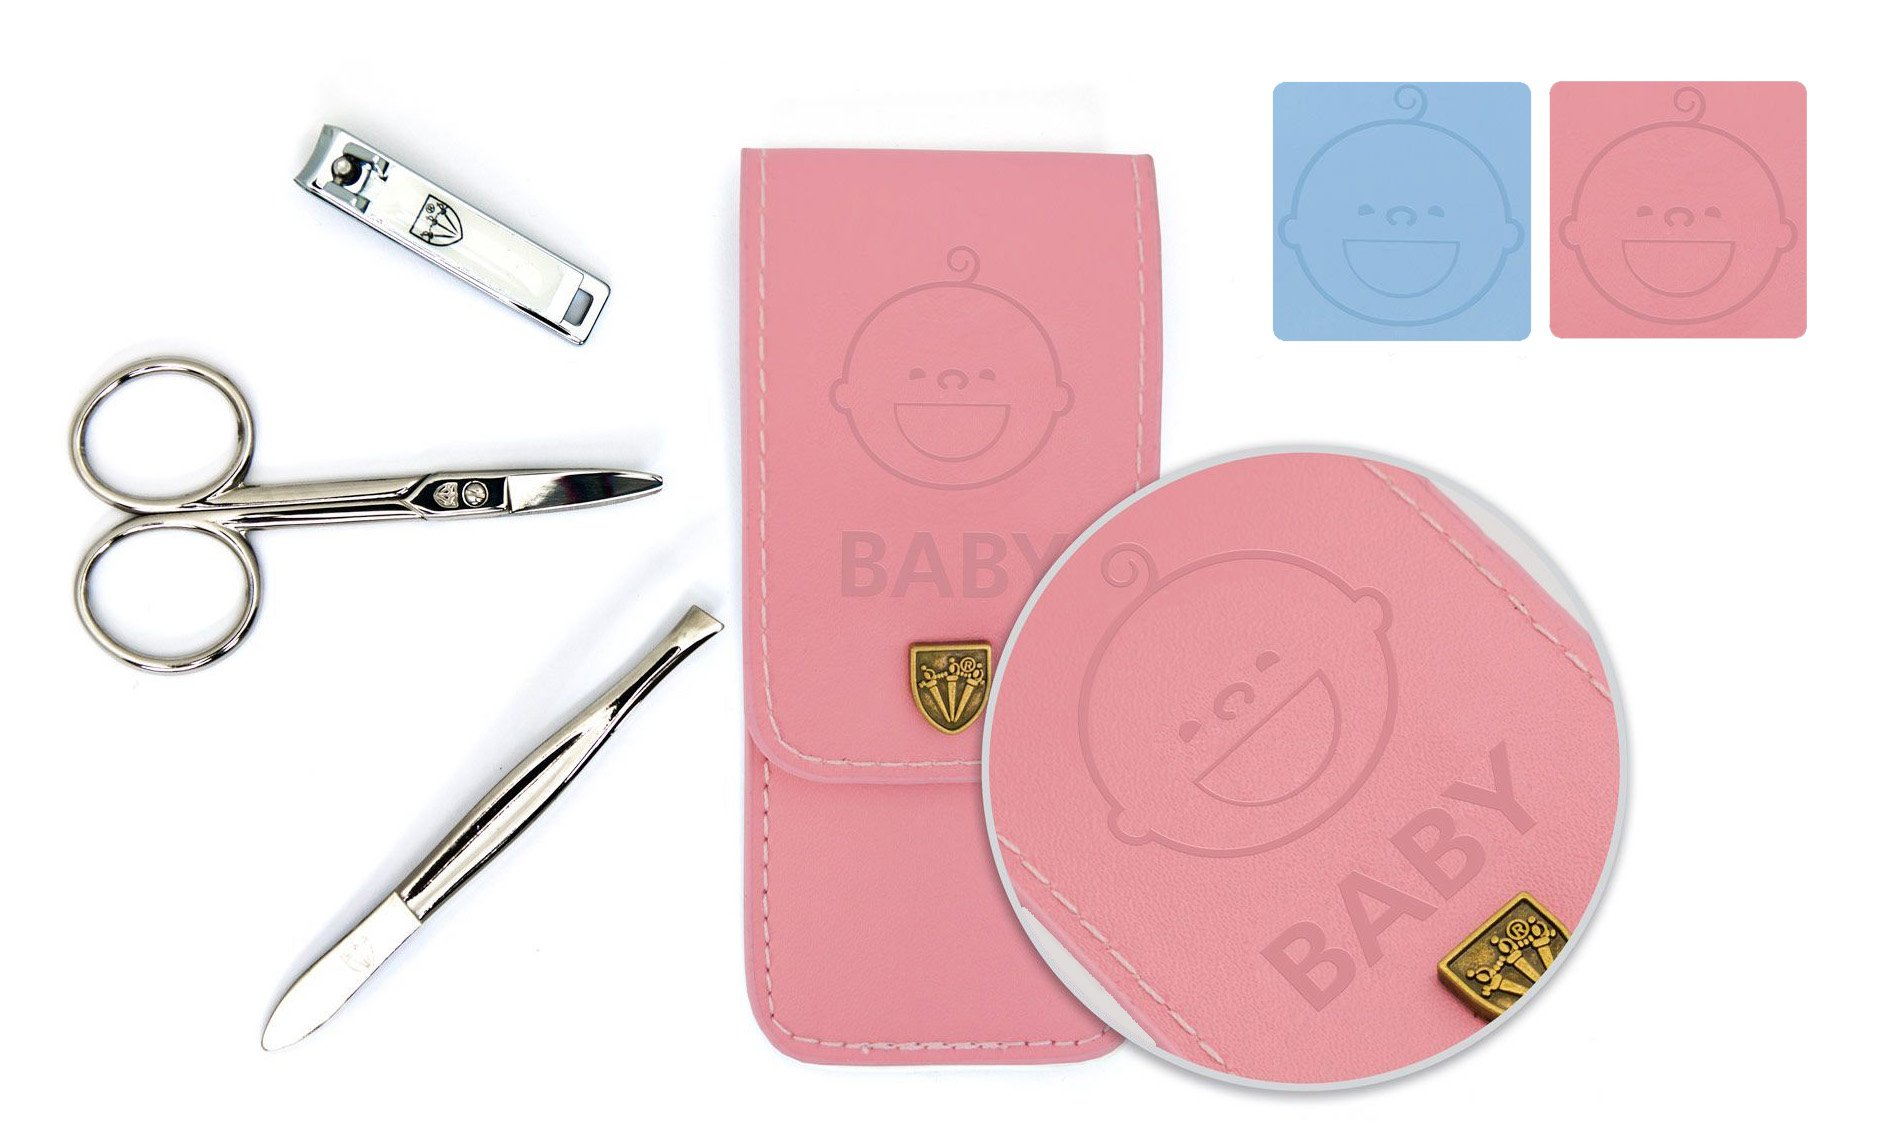 3 Swords Germany – brand quality 3 piece manicure pedicure kit set for BABY/TODDLERS / CHILDREN/INFANTS nail care scissors tweezers clipper fashion leather case GIRL PINK in gift box (67413)